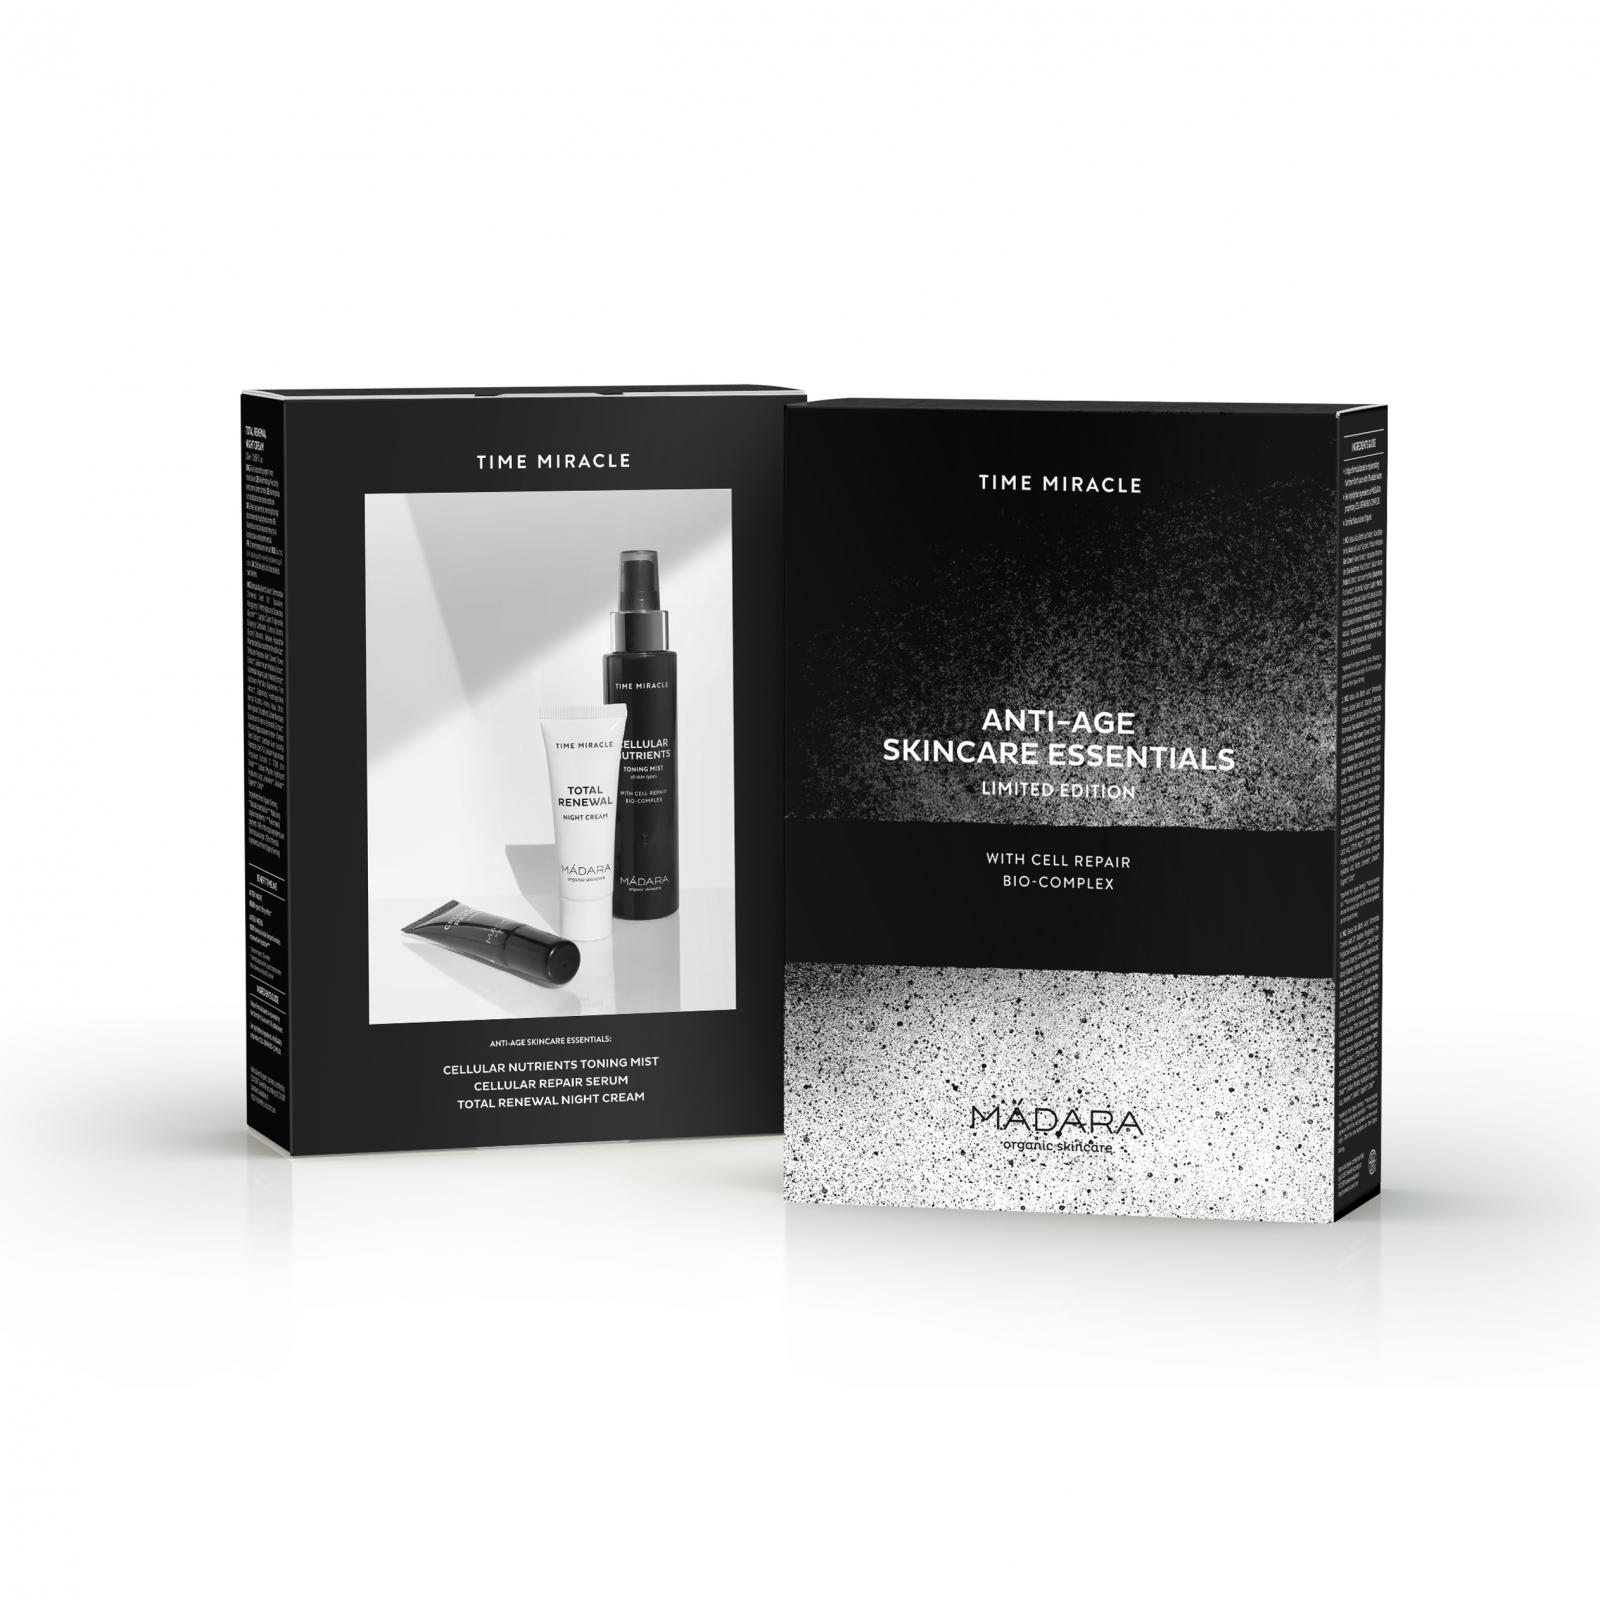 Mádara Sada Time Miracle, Starter Set 100 ml + 20 ml + 10 ml